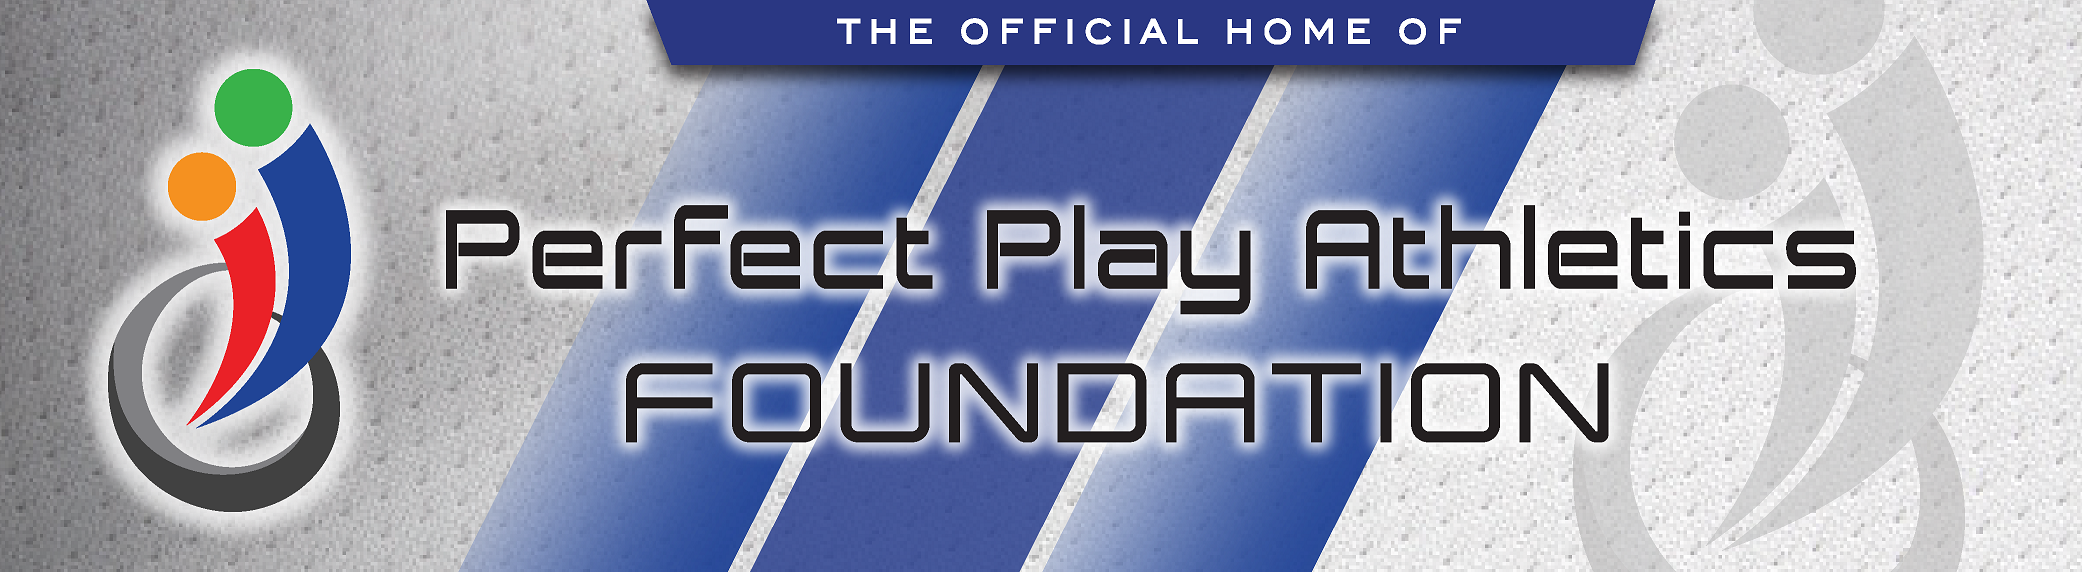 Homepage banner foundation 04